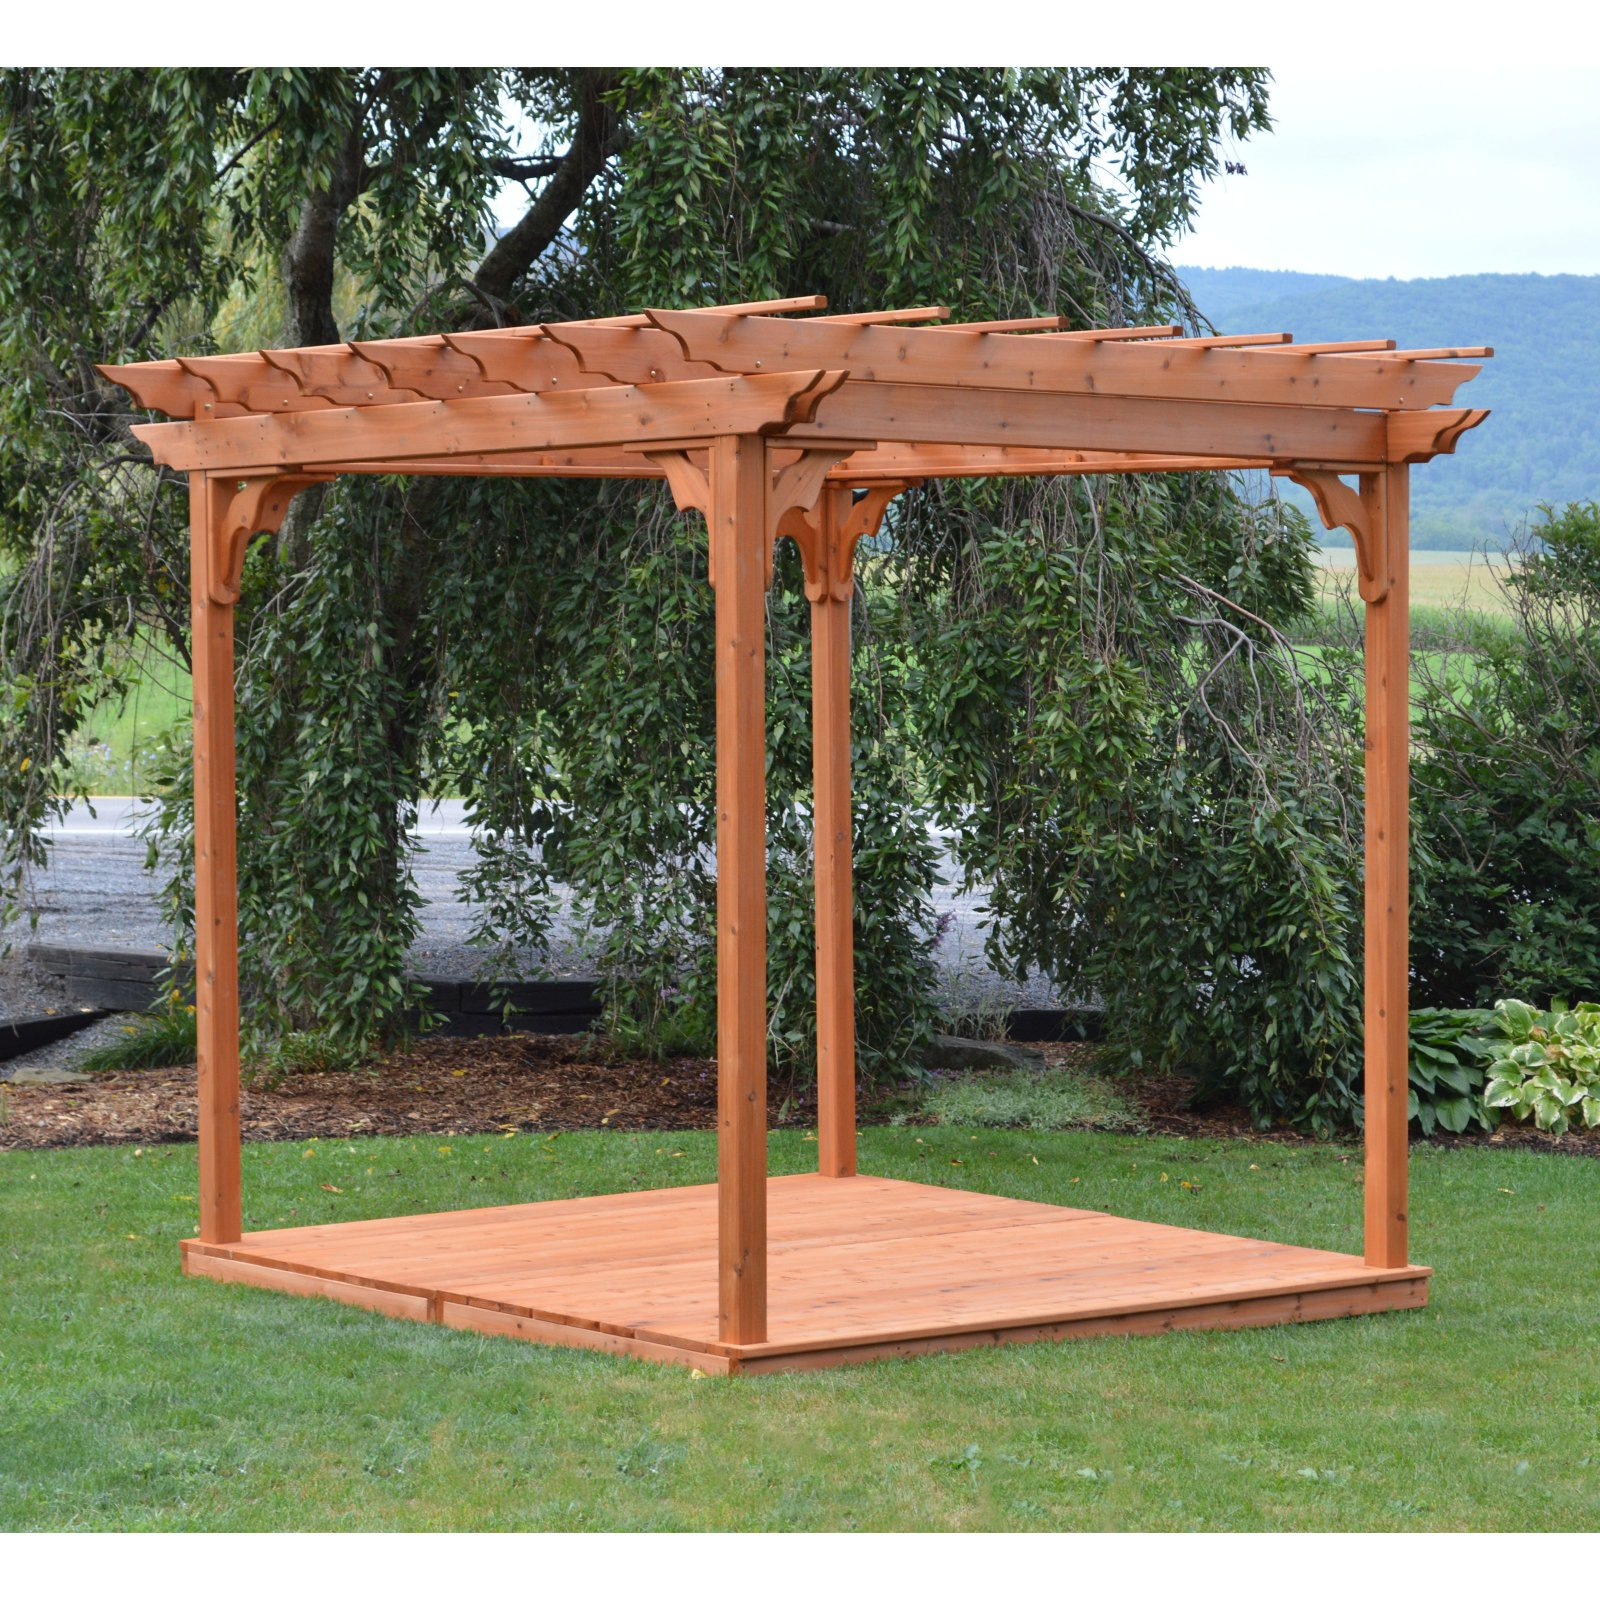 A & L Furniture Western Red Cedar Pergola With Deck and Swing Hangers